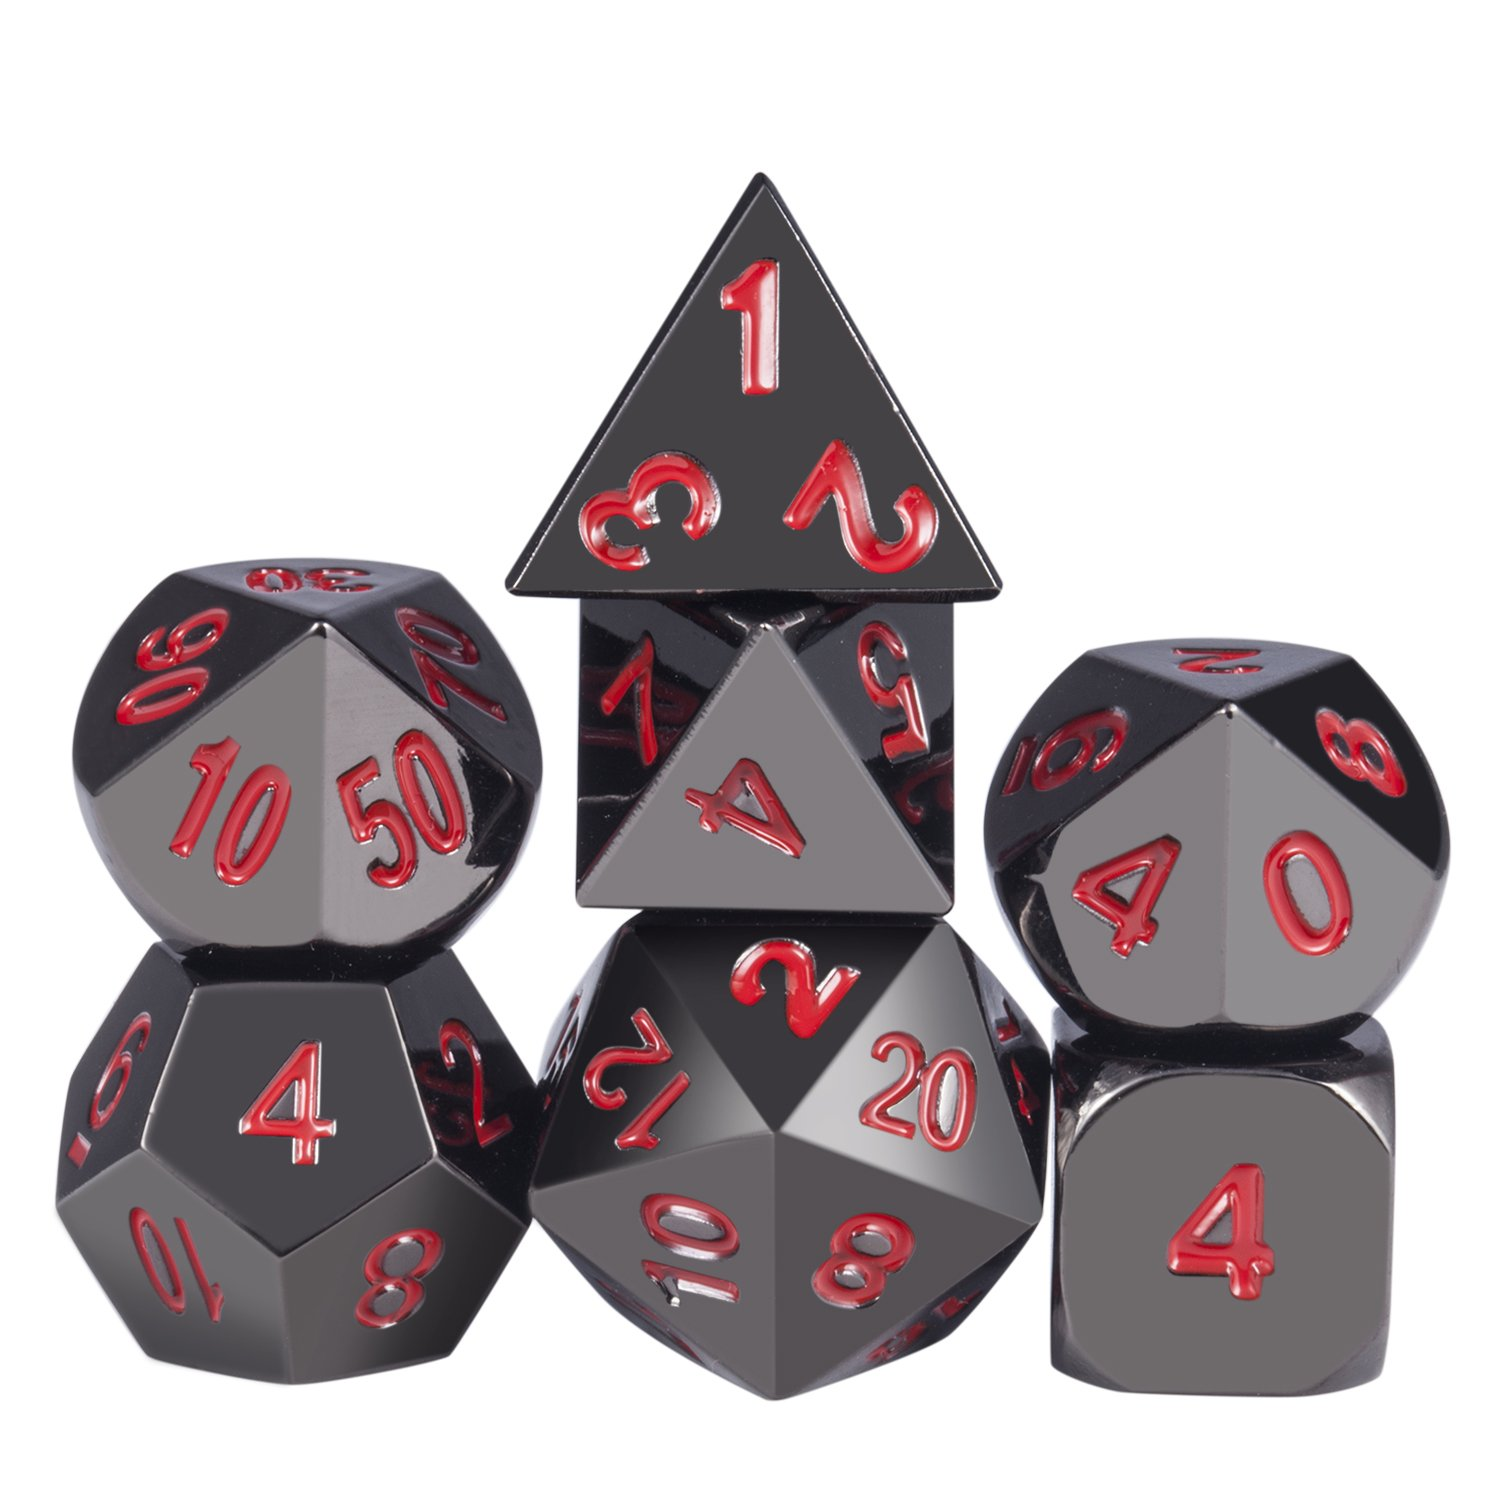 Metal Dice Set D&D, 7-Die Polyhedral Metallic Dice Set with Heavy Zinc Alloy Black Color and Red Numbers, for Role Playing Game, DND, MTG,RPG and Table Game